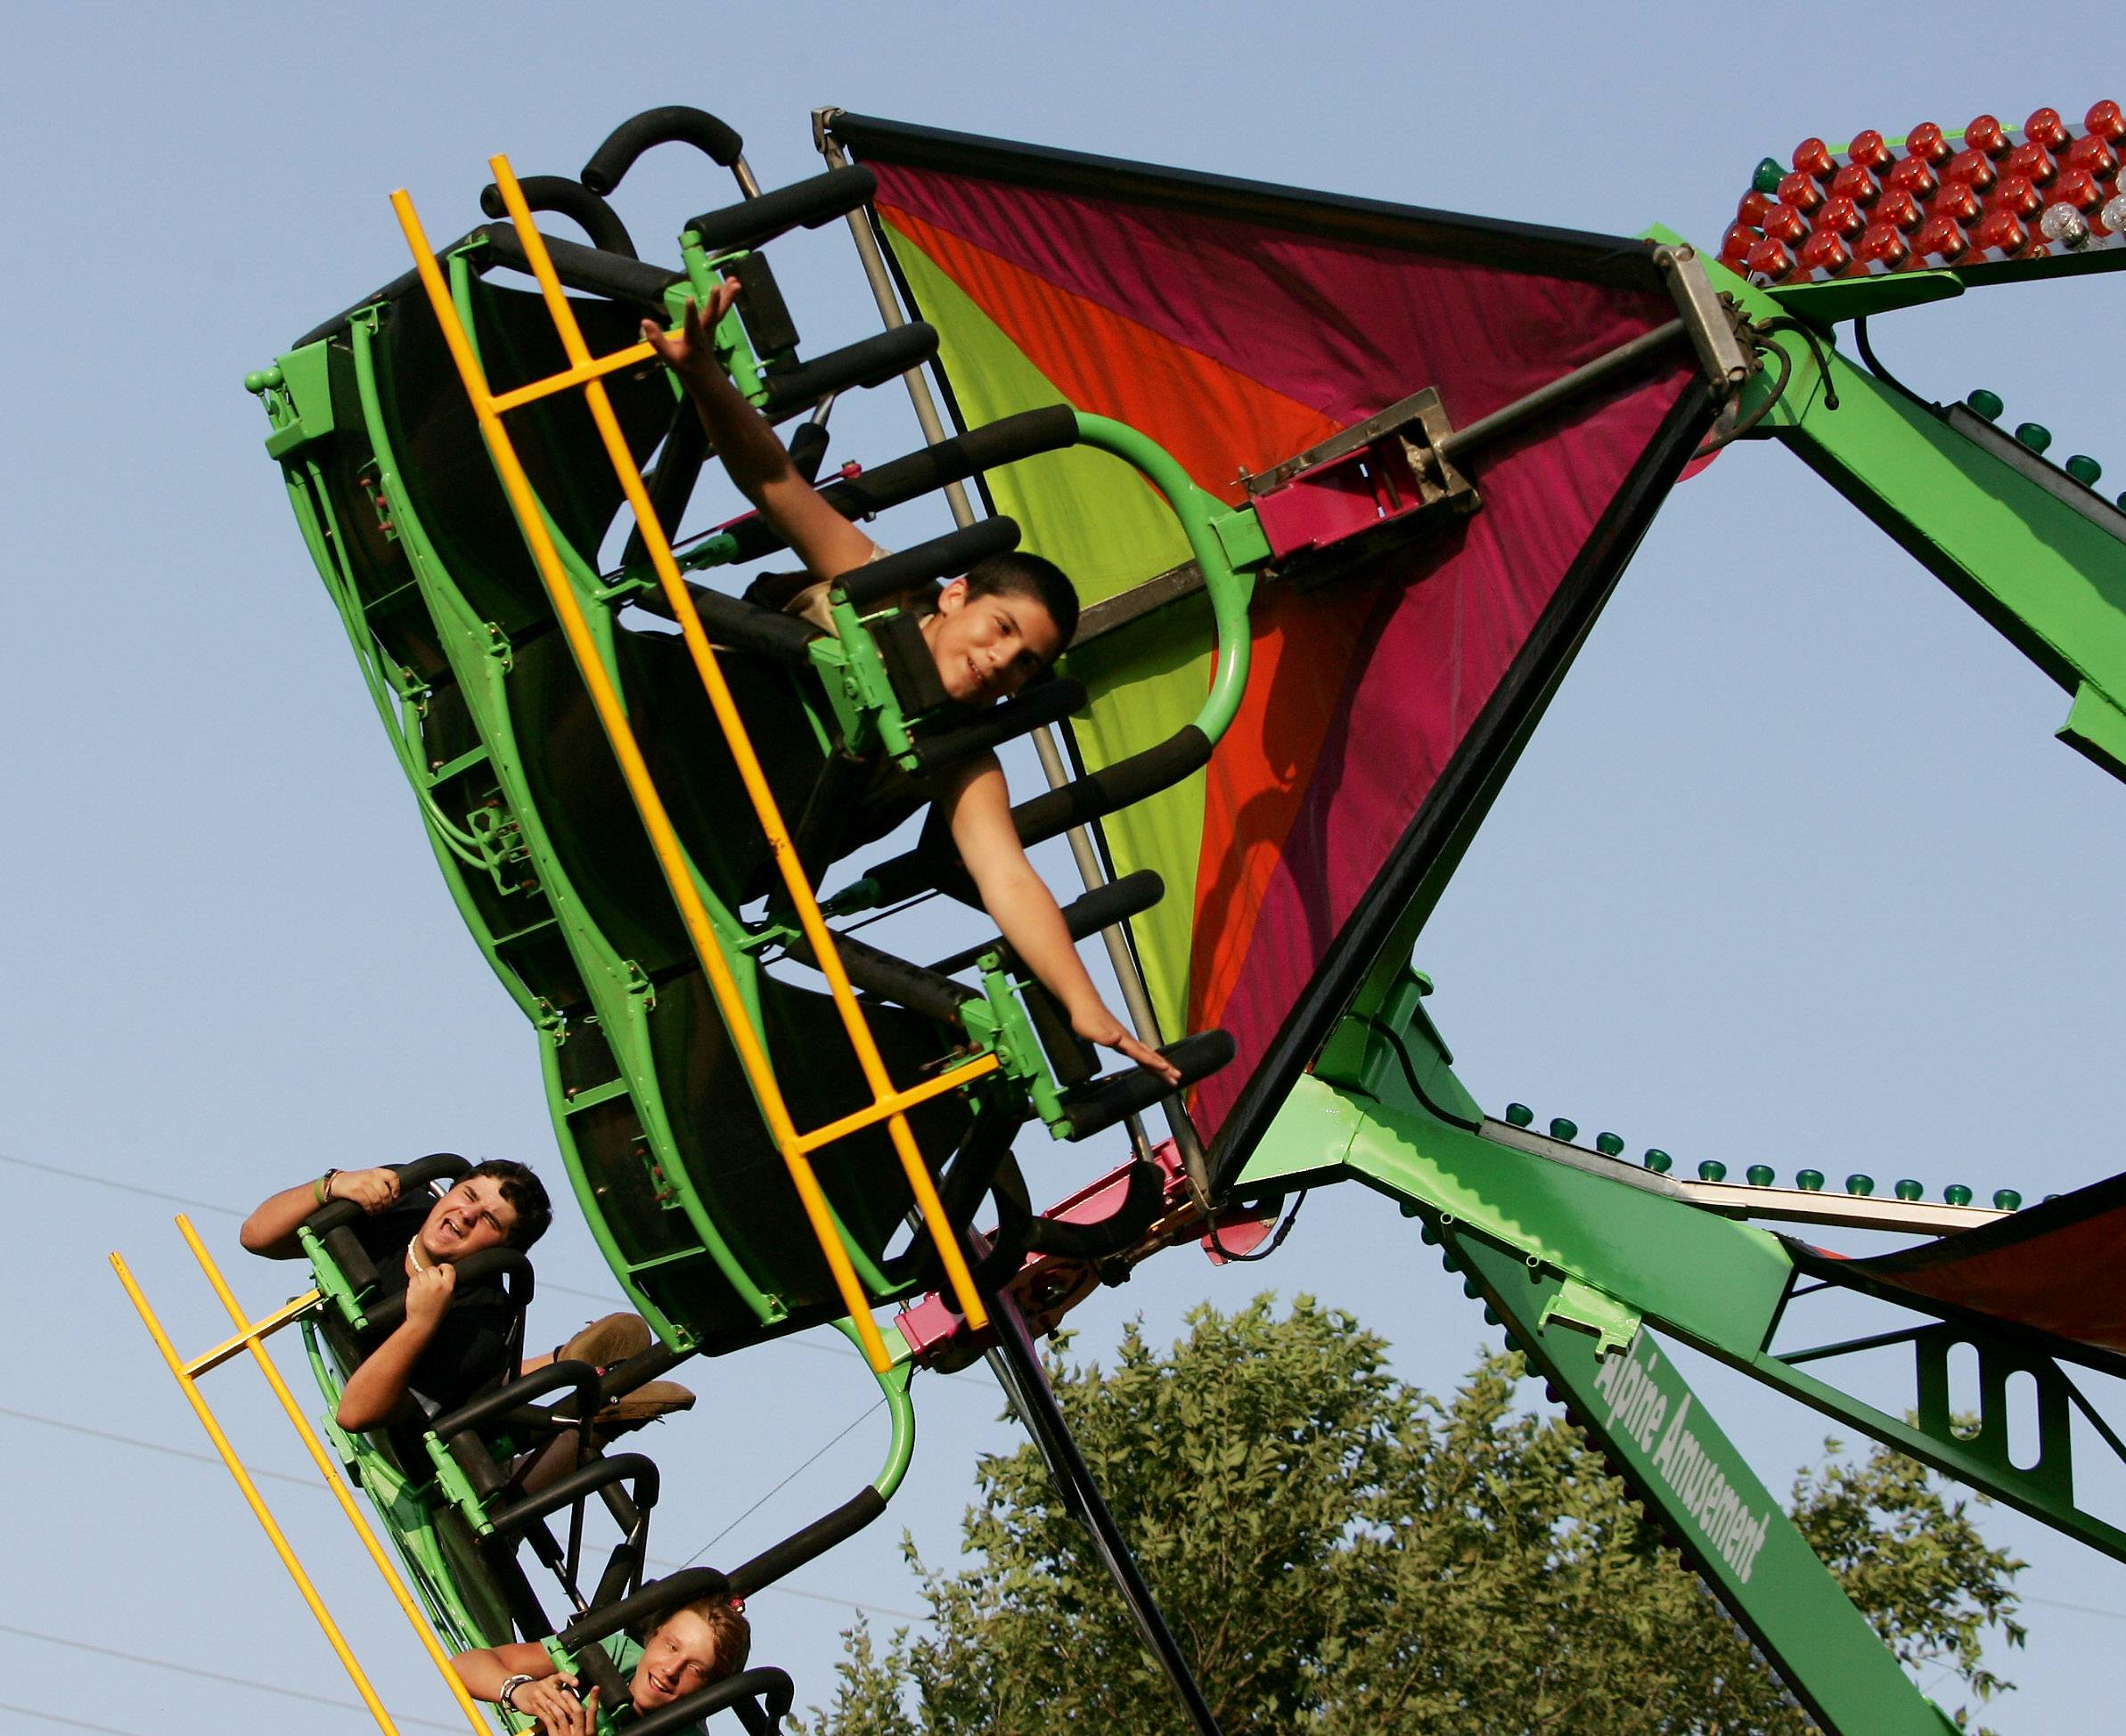 Alfonso Gonzalez of Lake Villa pretends to fly like Superman on the Cliff Hanger ride at a previous Lake Villa Days. This year's 81st celebration will take place July 31 to Aug. 3 at Lehmann Park.